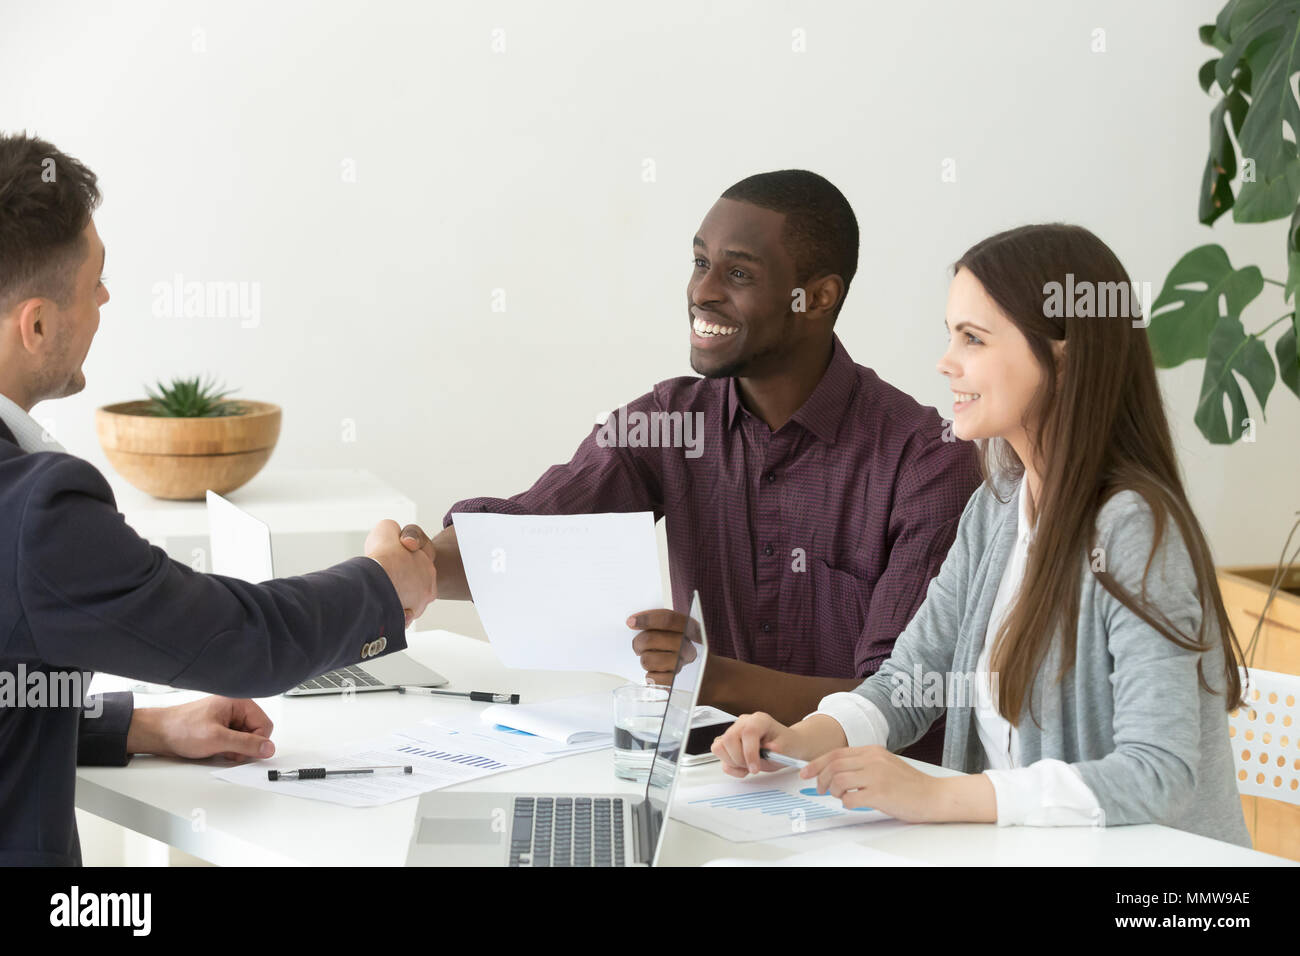 Ceo handshaking appreciating african project team leader for goo - Stock Image